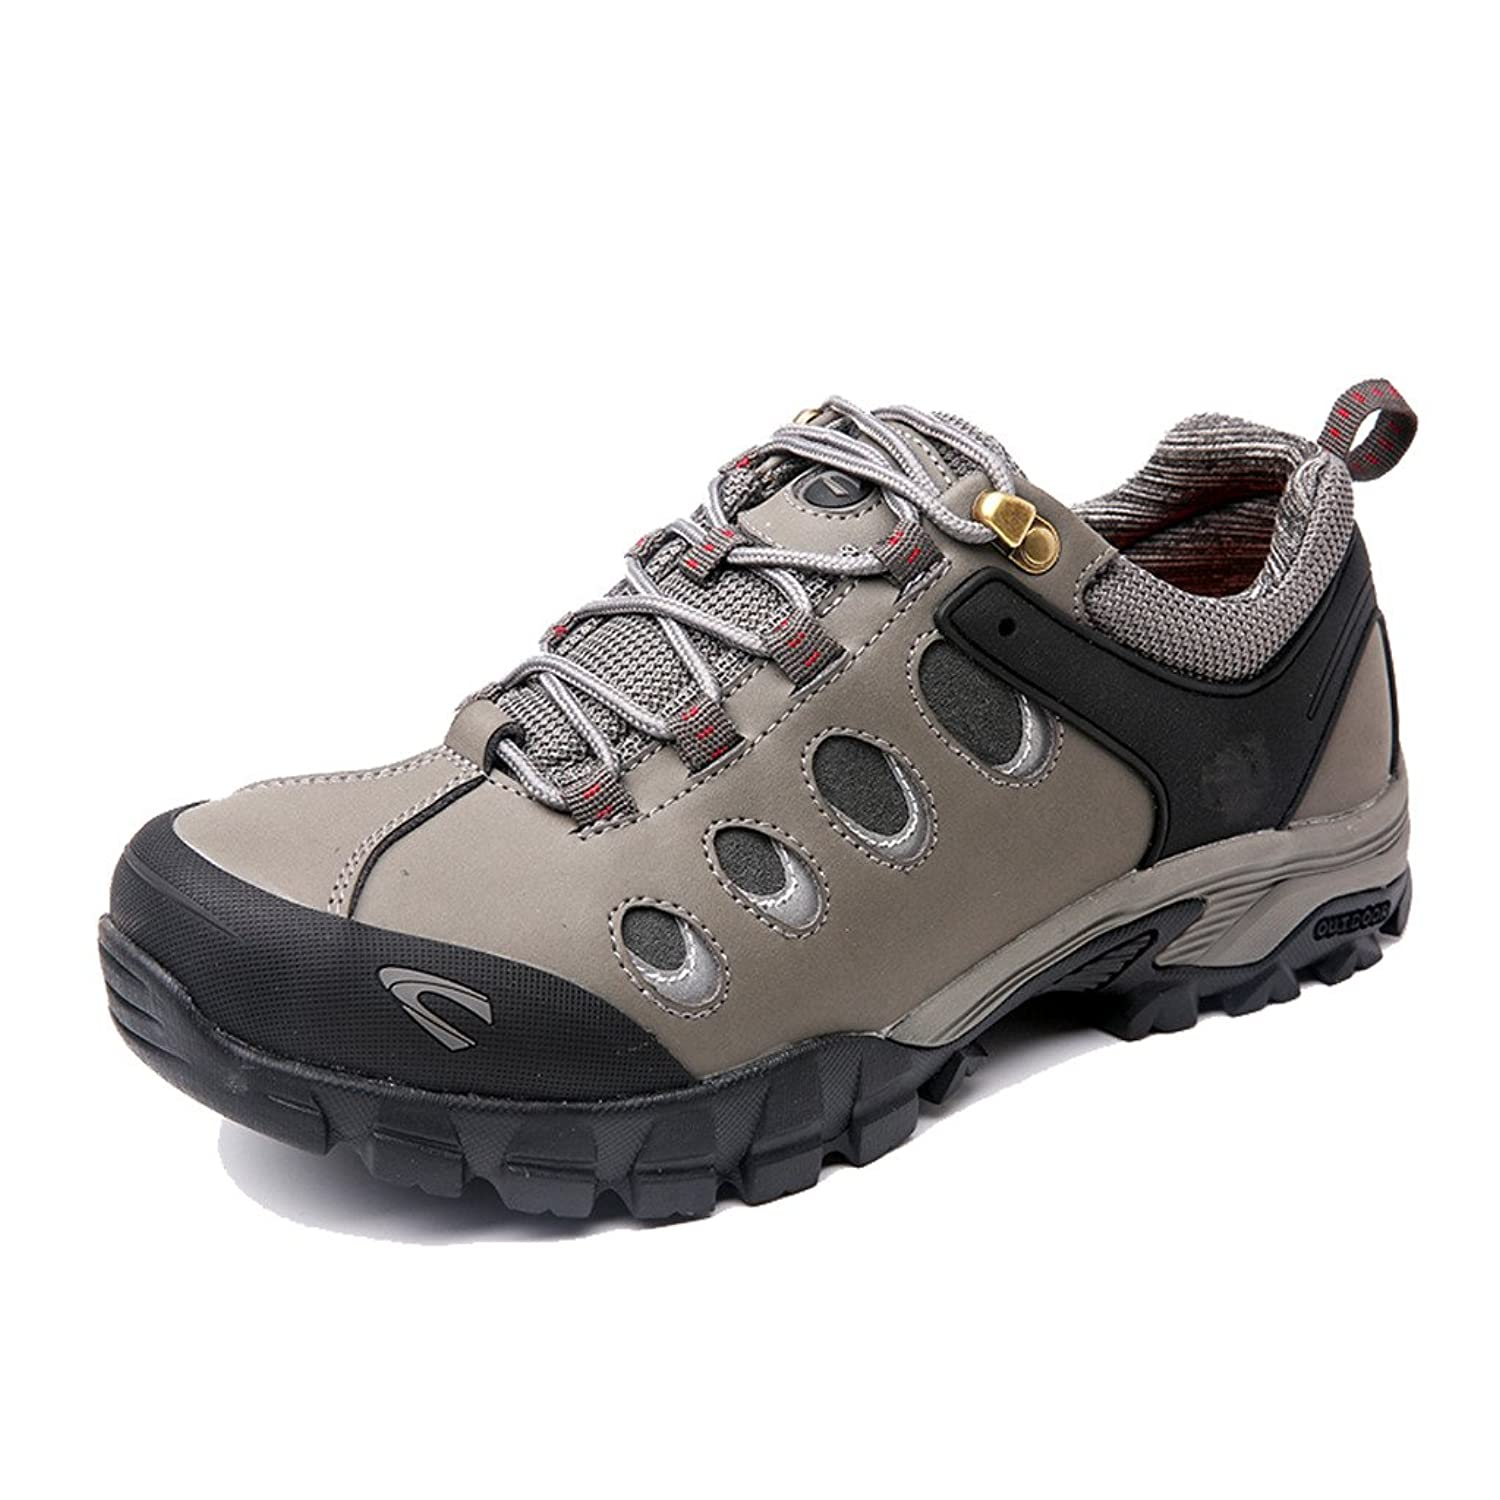 Men's Leather Hiker Hiking Shoe Outdoor Backpacking Shoe